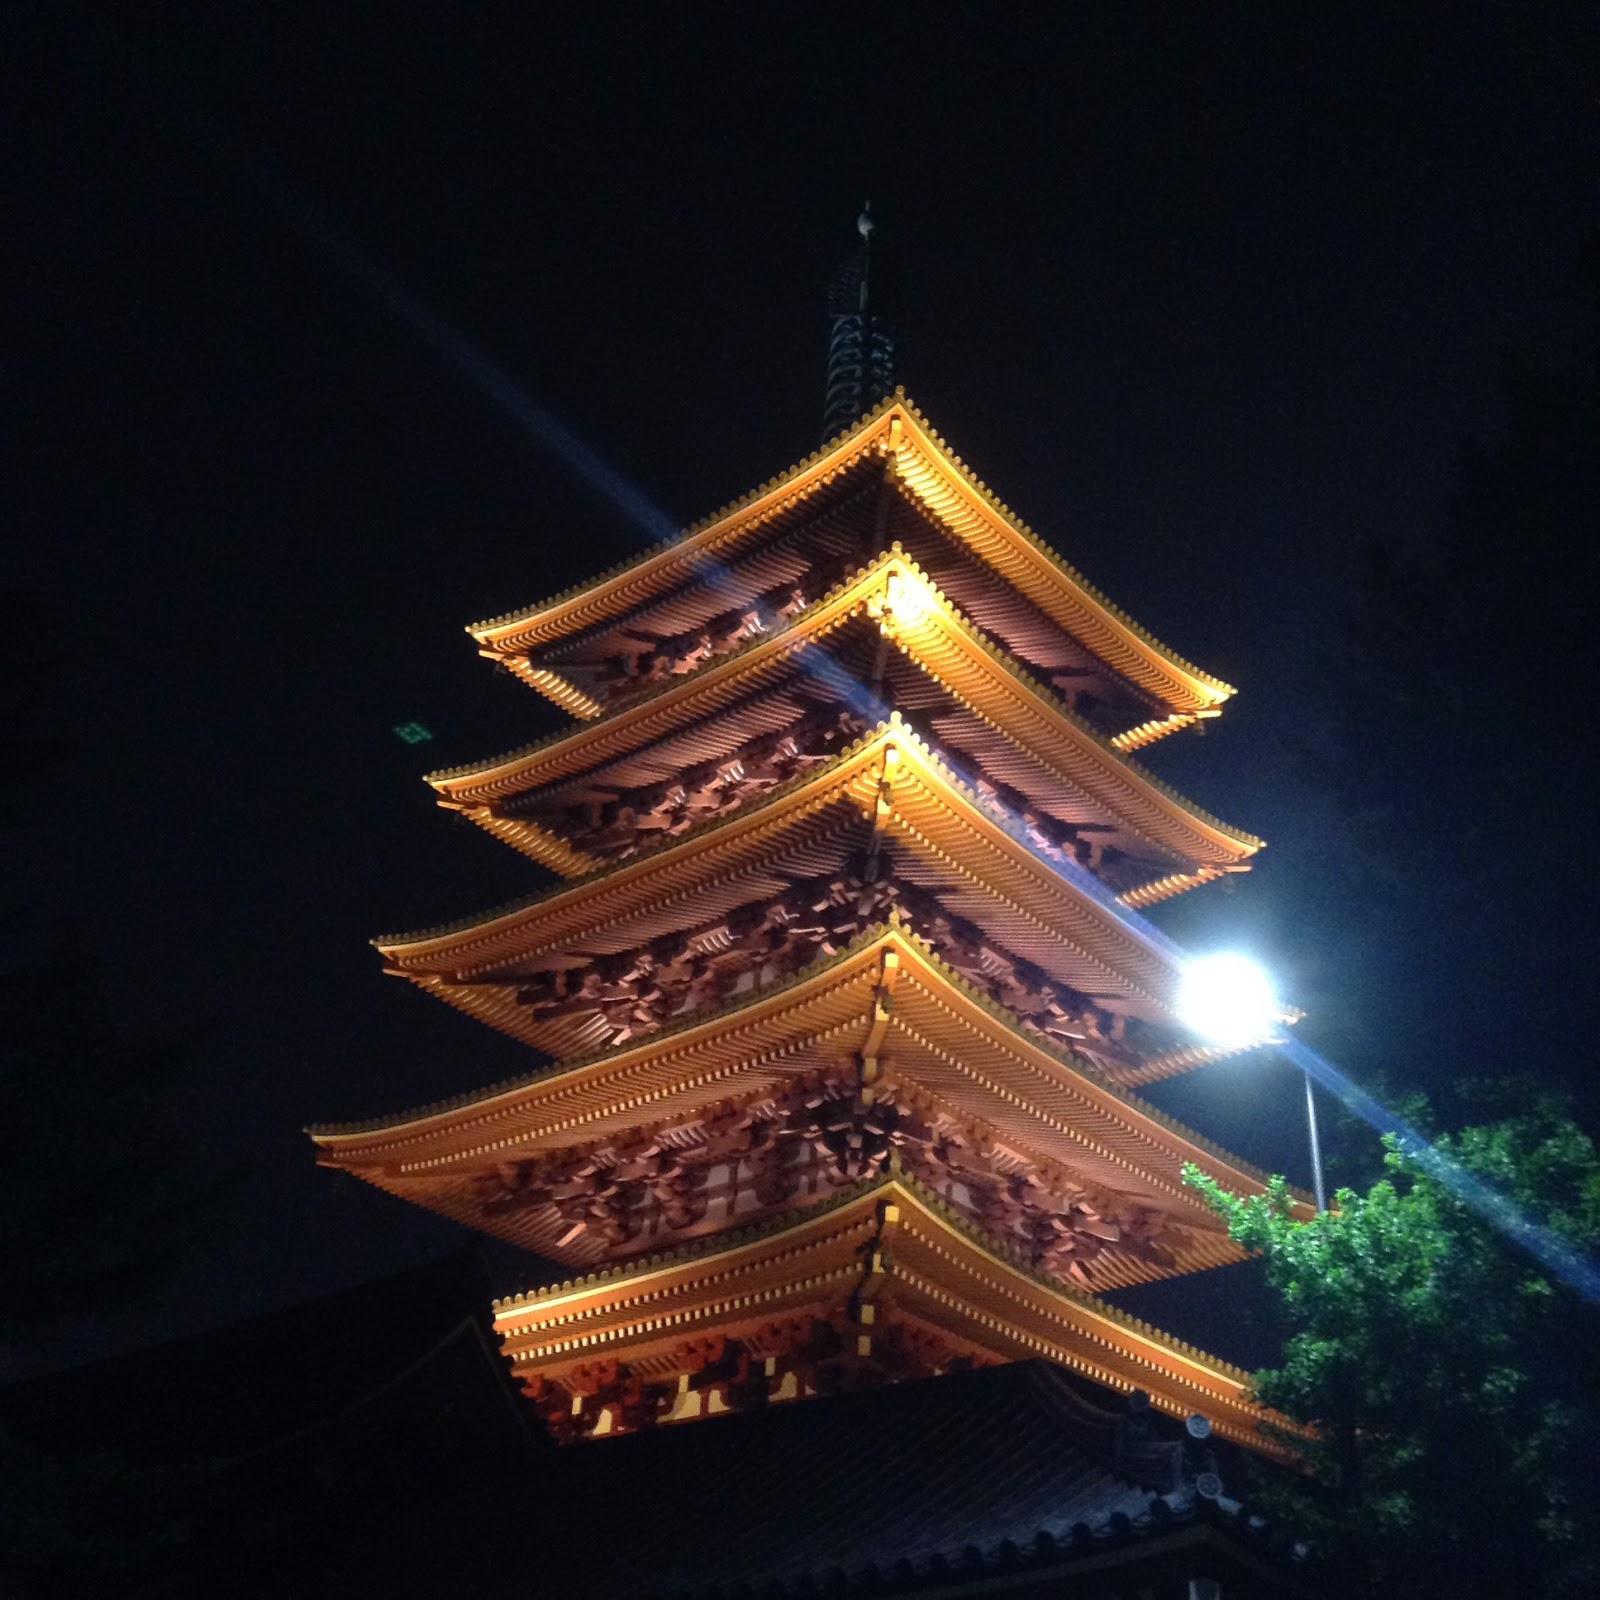 Sensouji at night